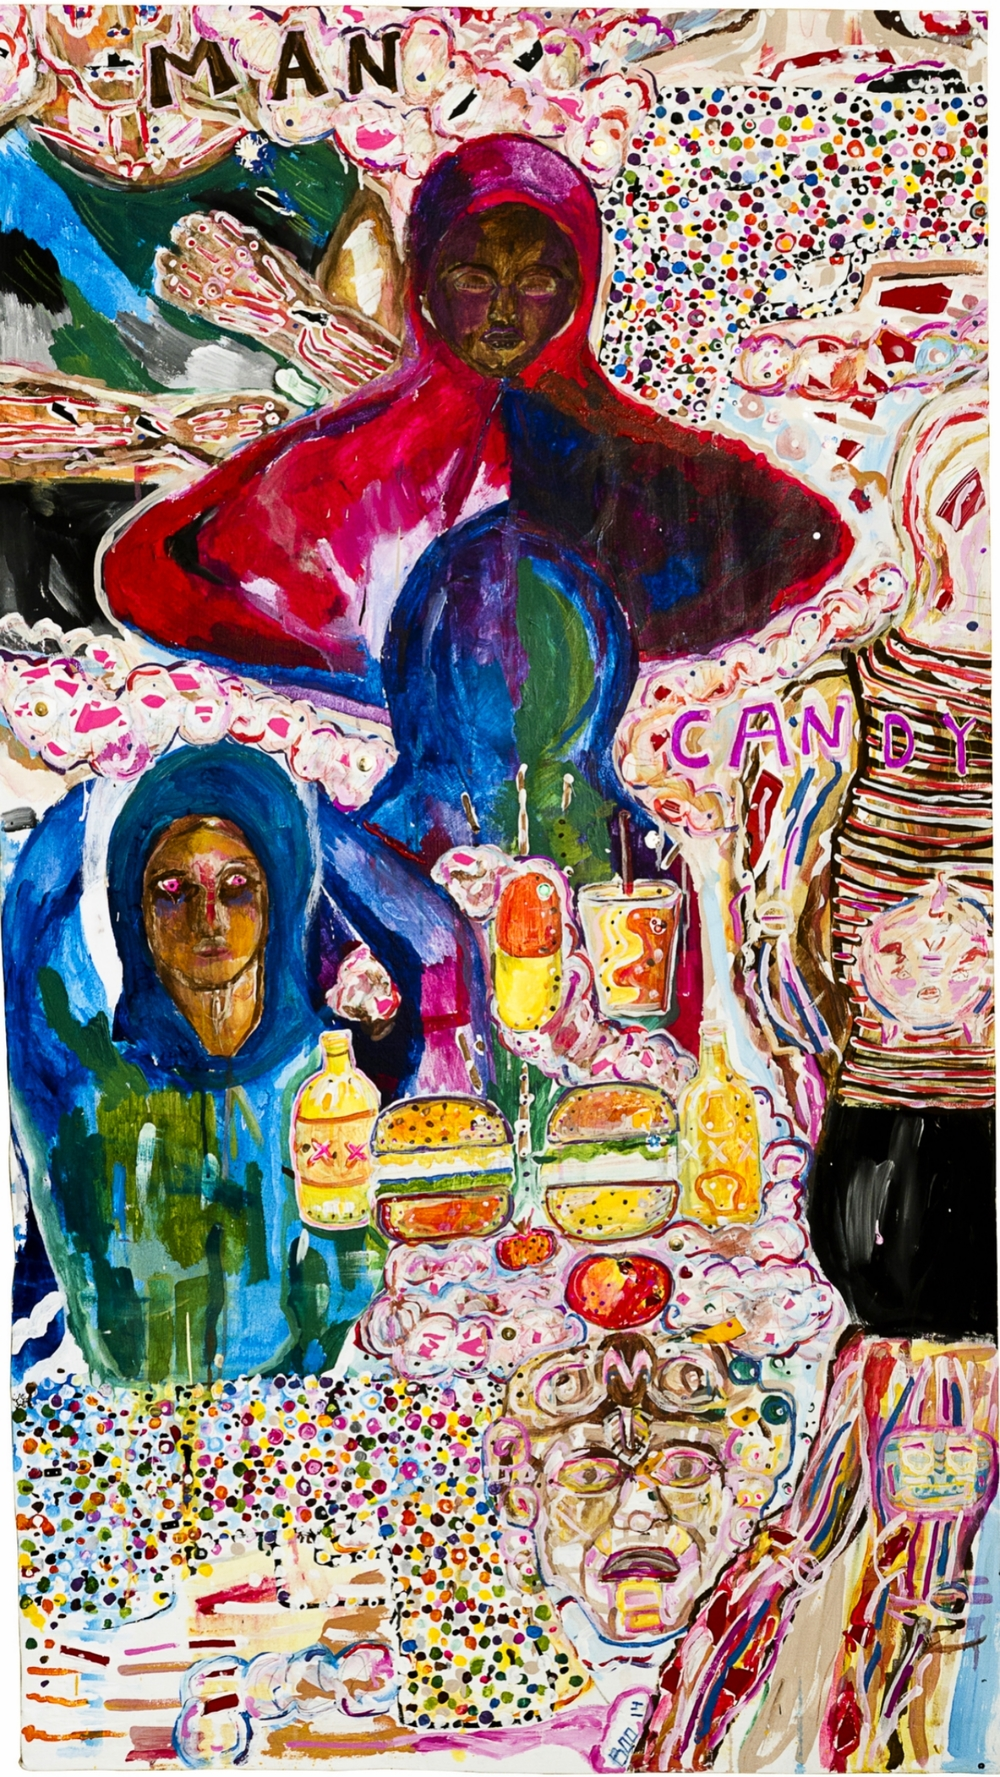 Candy Boy (for Trayvon and...), mixed media on canvas, 5ft x 3ft, 2014